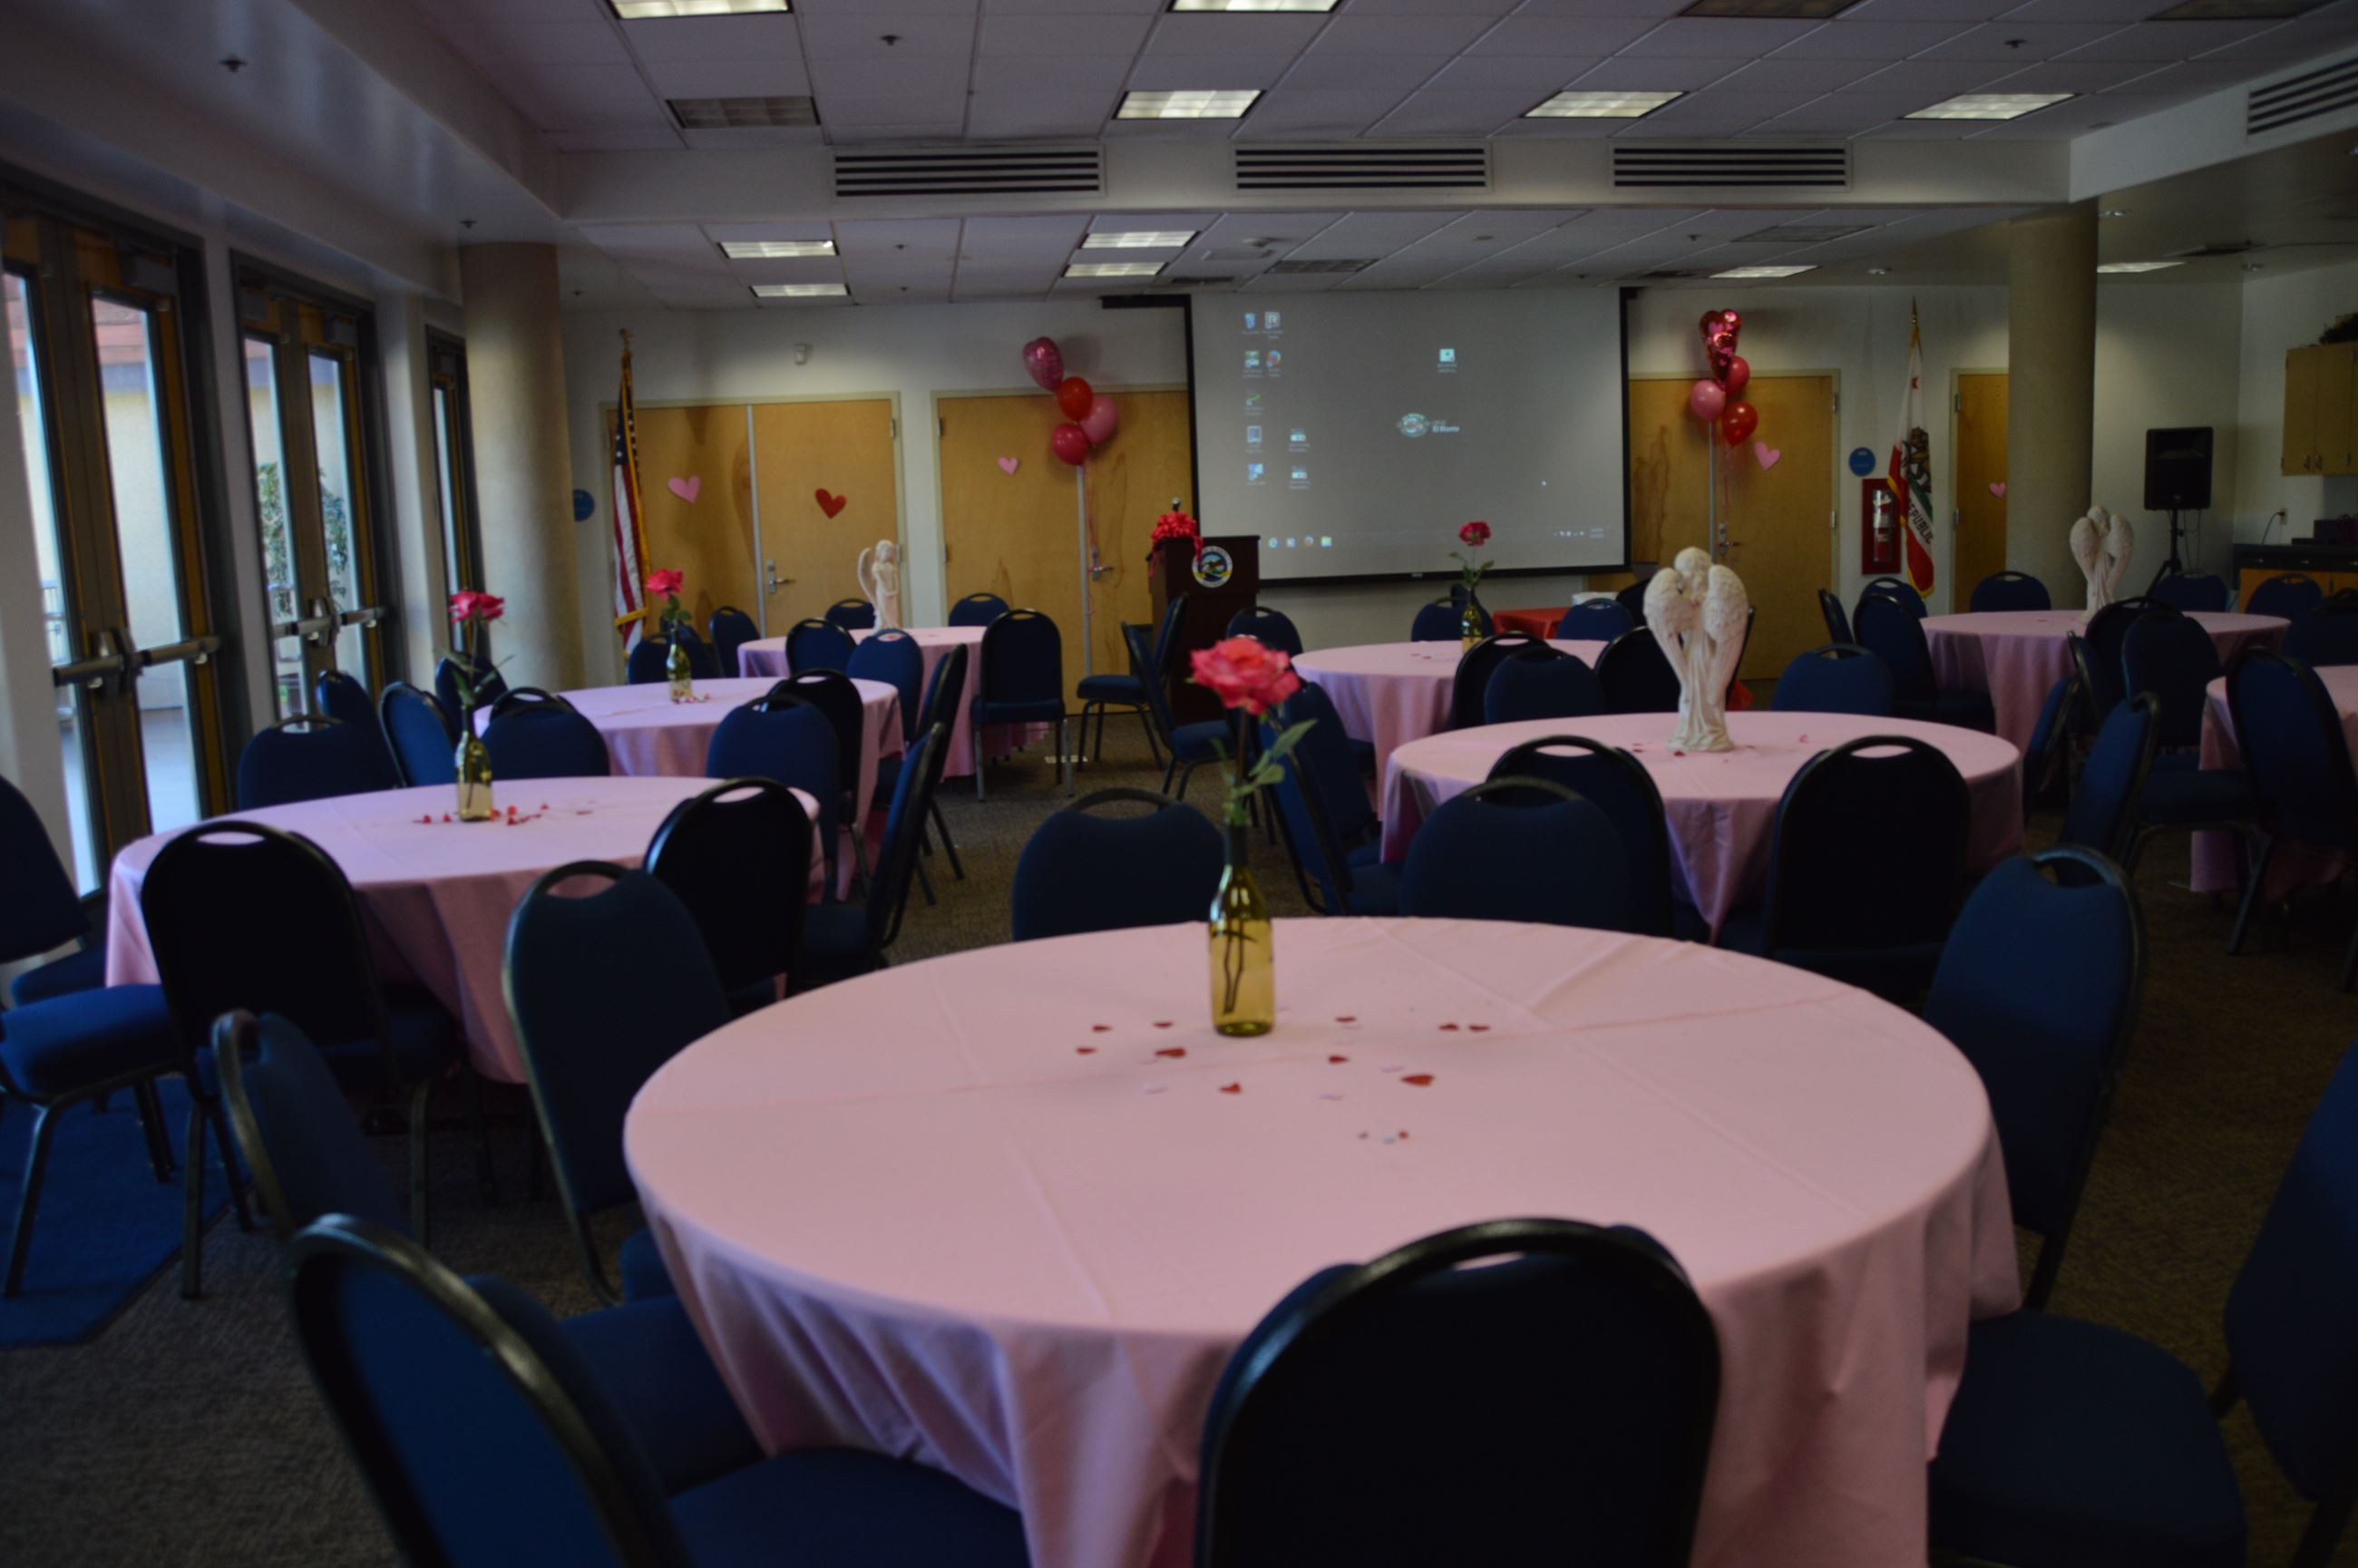 Image of room A at the Aquatic Center decorated for a party